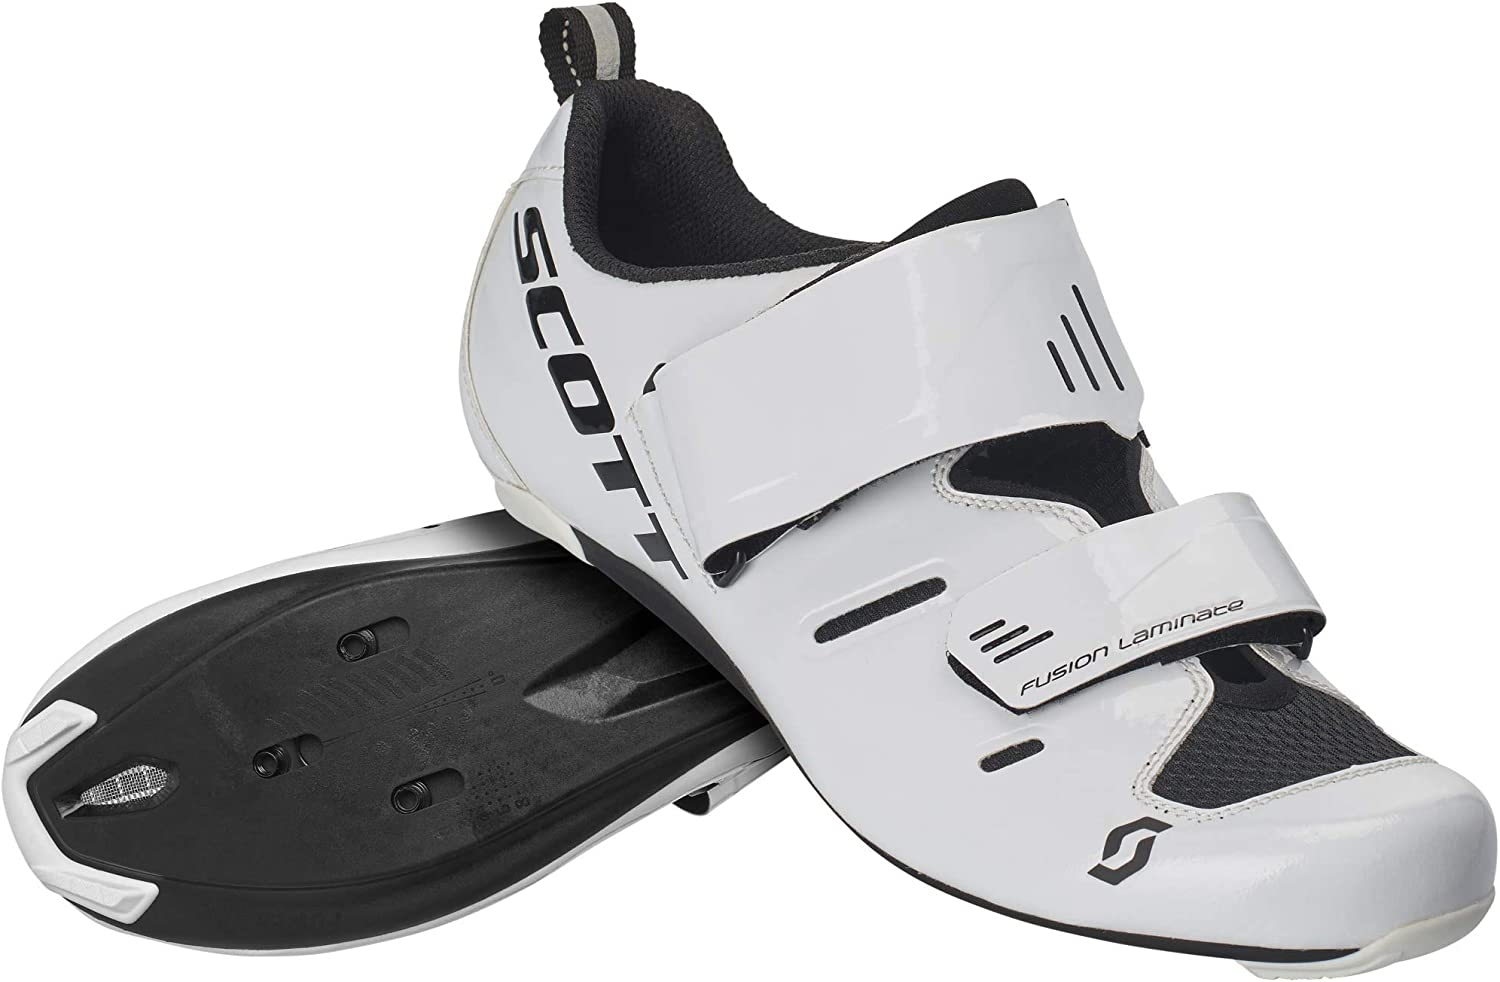 Scott Road Tri Pro Triathlon 2020 - Zapatillas de ciclismo, color blanco y negro